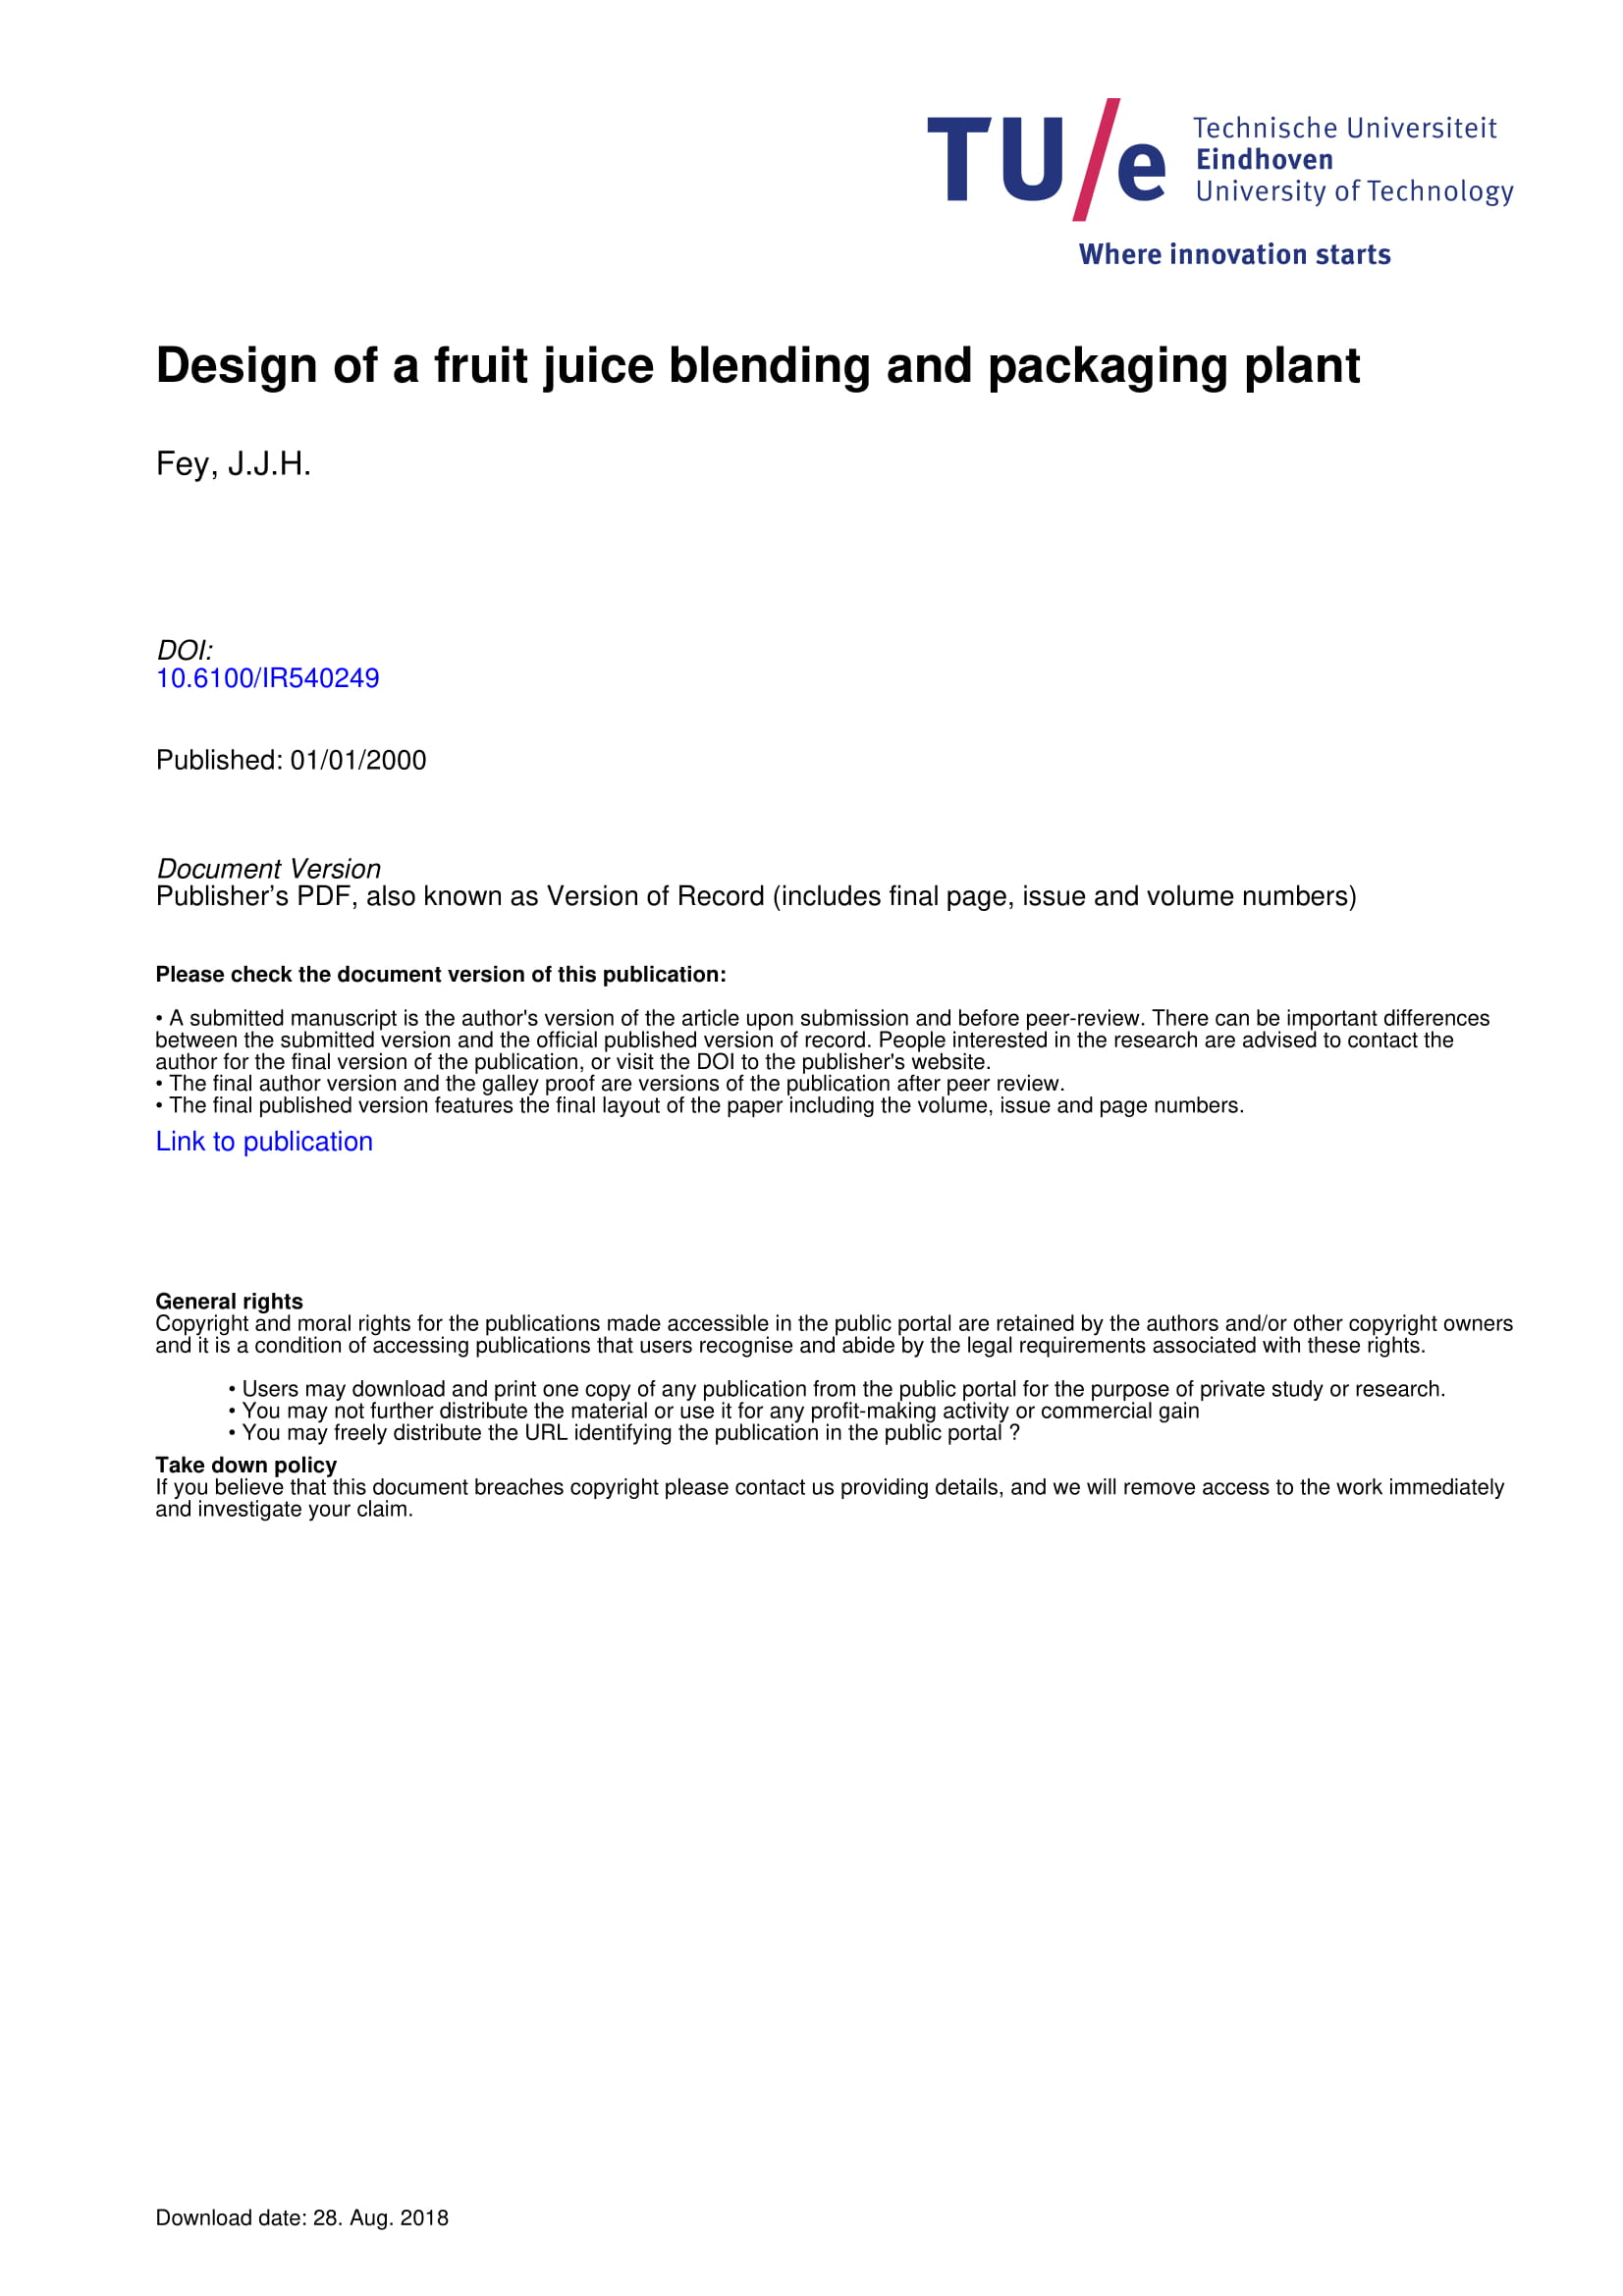 business plan with design of a fruit juice blending and packaging plant example 001